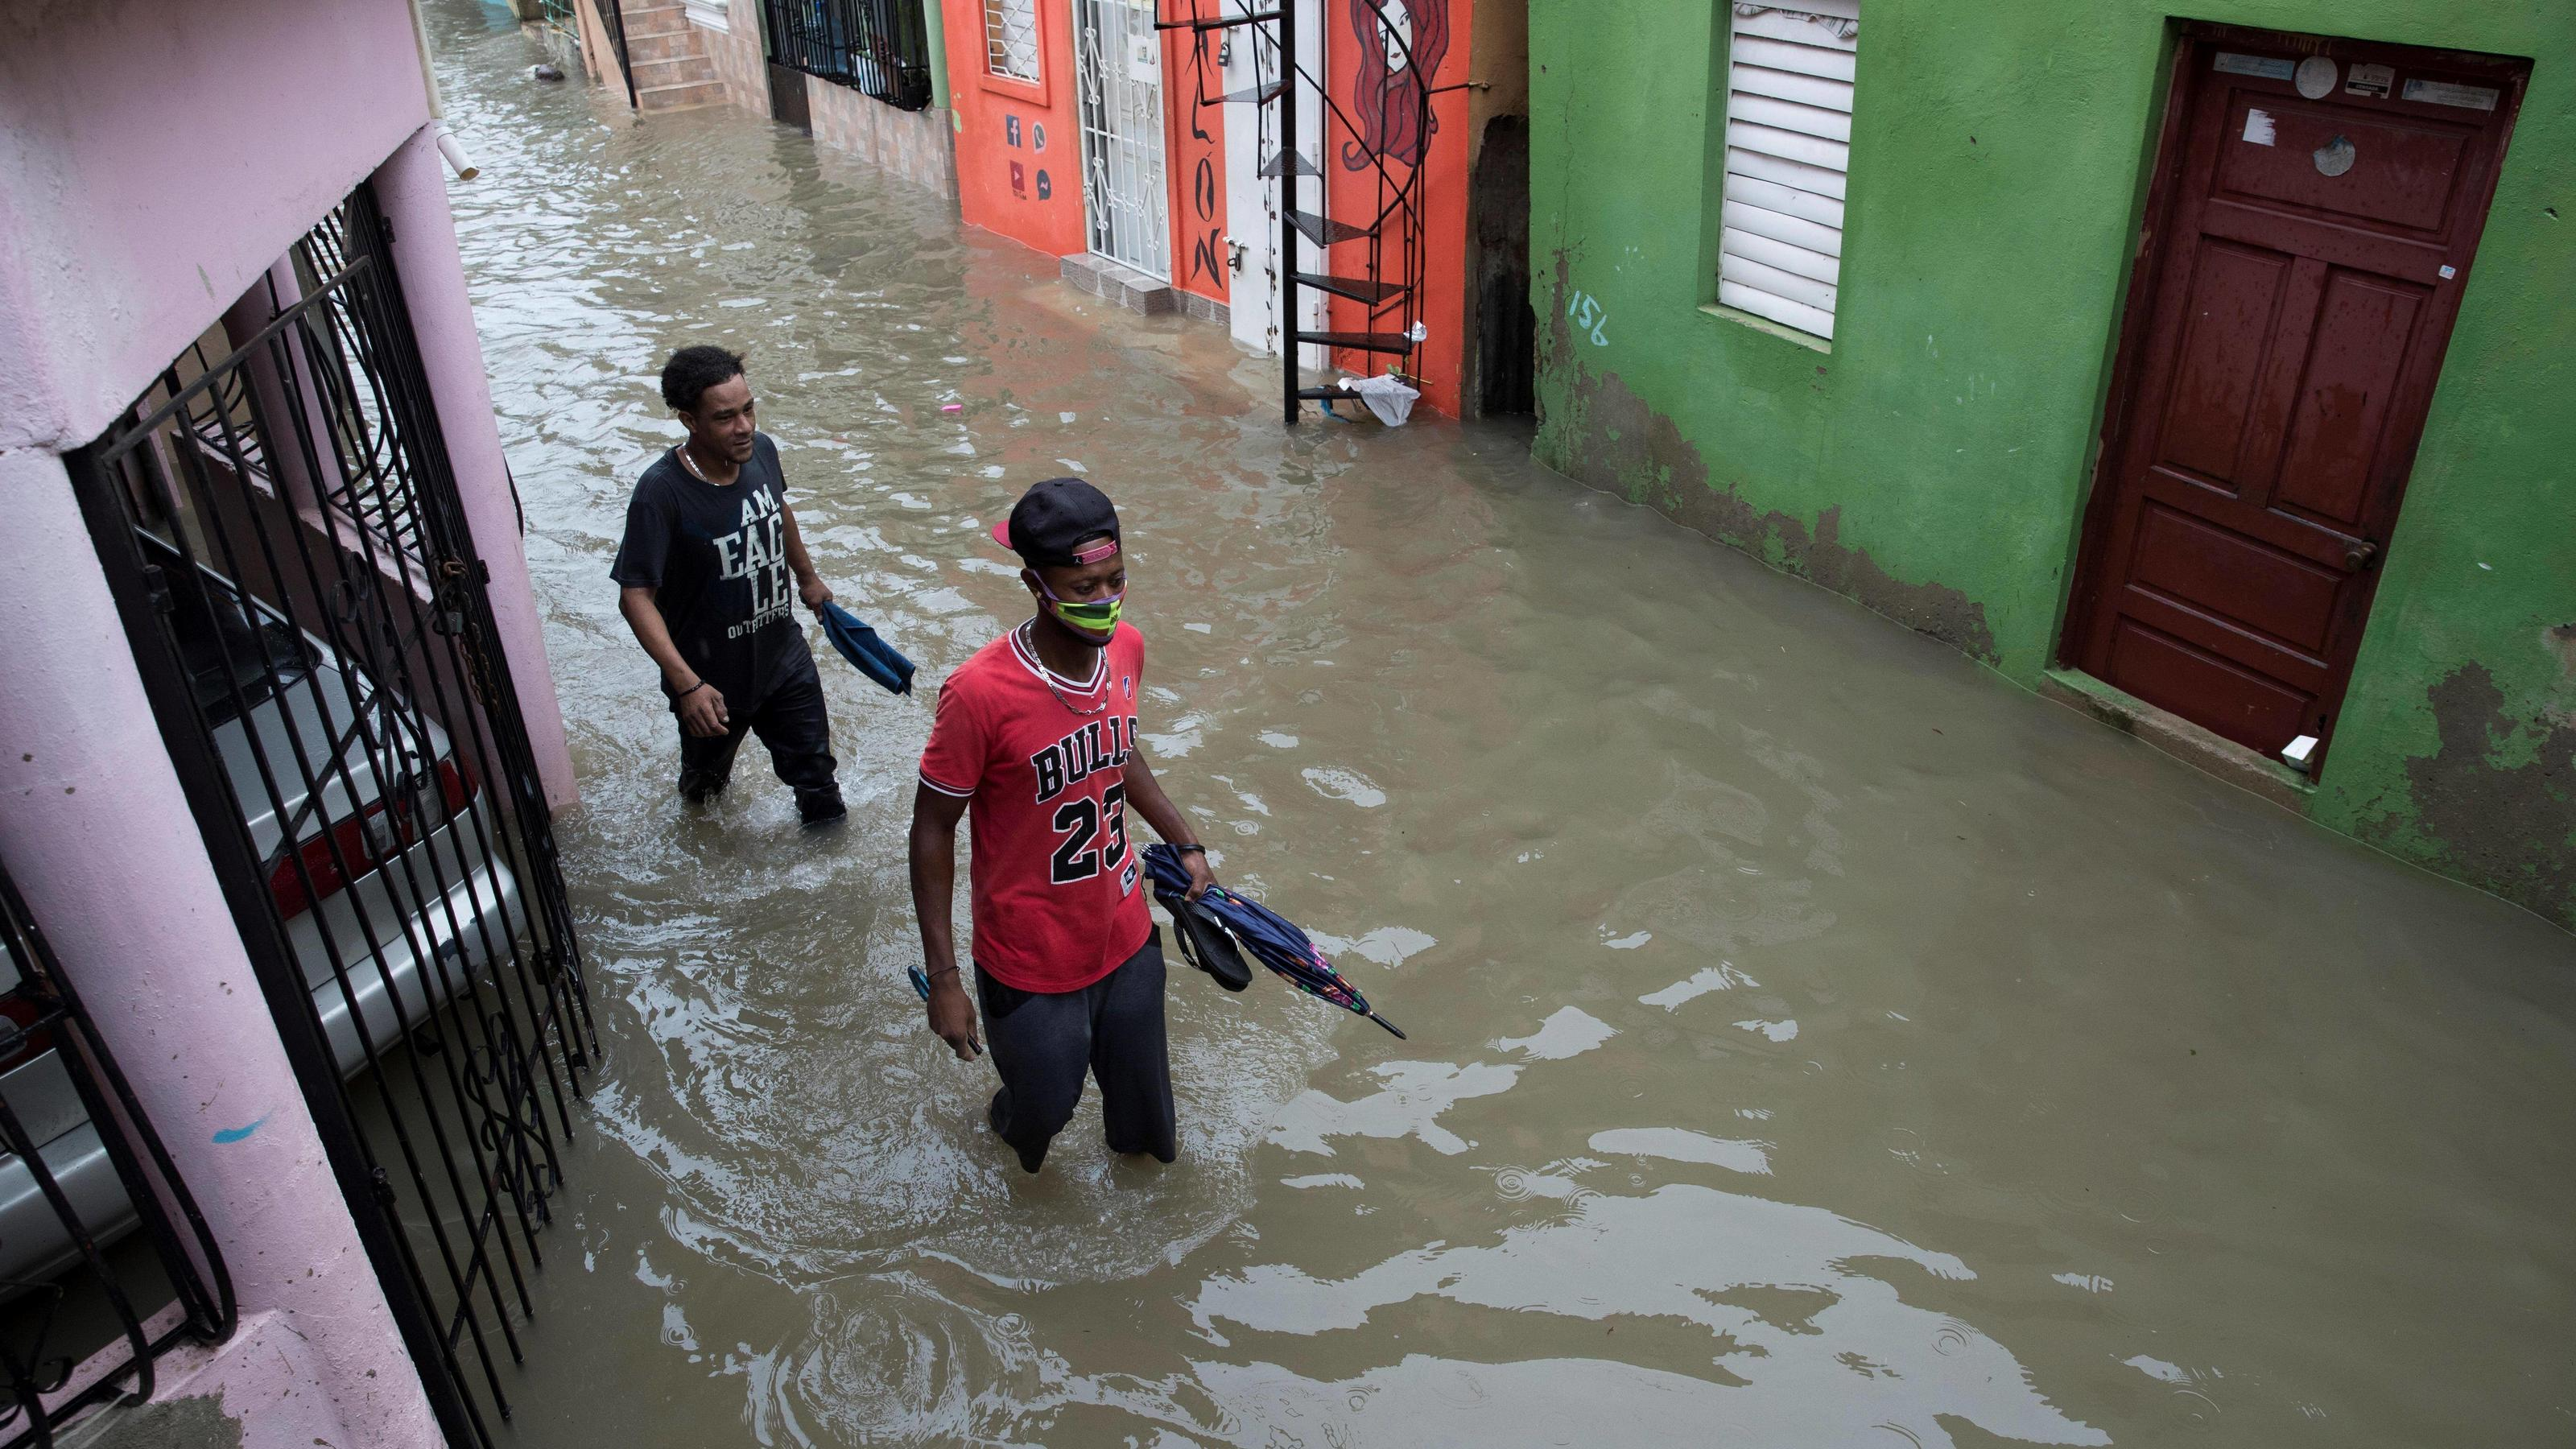 People walk on a completely flooded street due to heavy rains from Storm Laura, in Santo Domingo, Dominican Republic, 23 August 2020. At least three people died this Sunday in the Dominican Republic due to torrential rains caused by Tropical Storm L